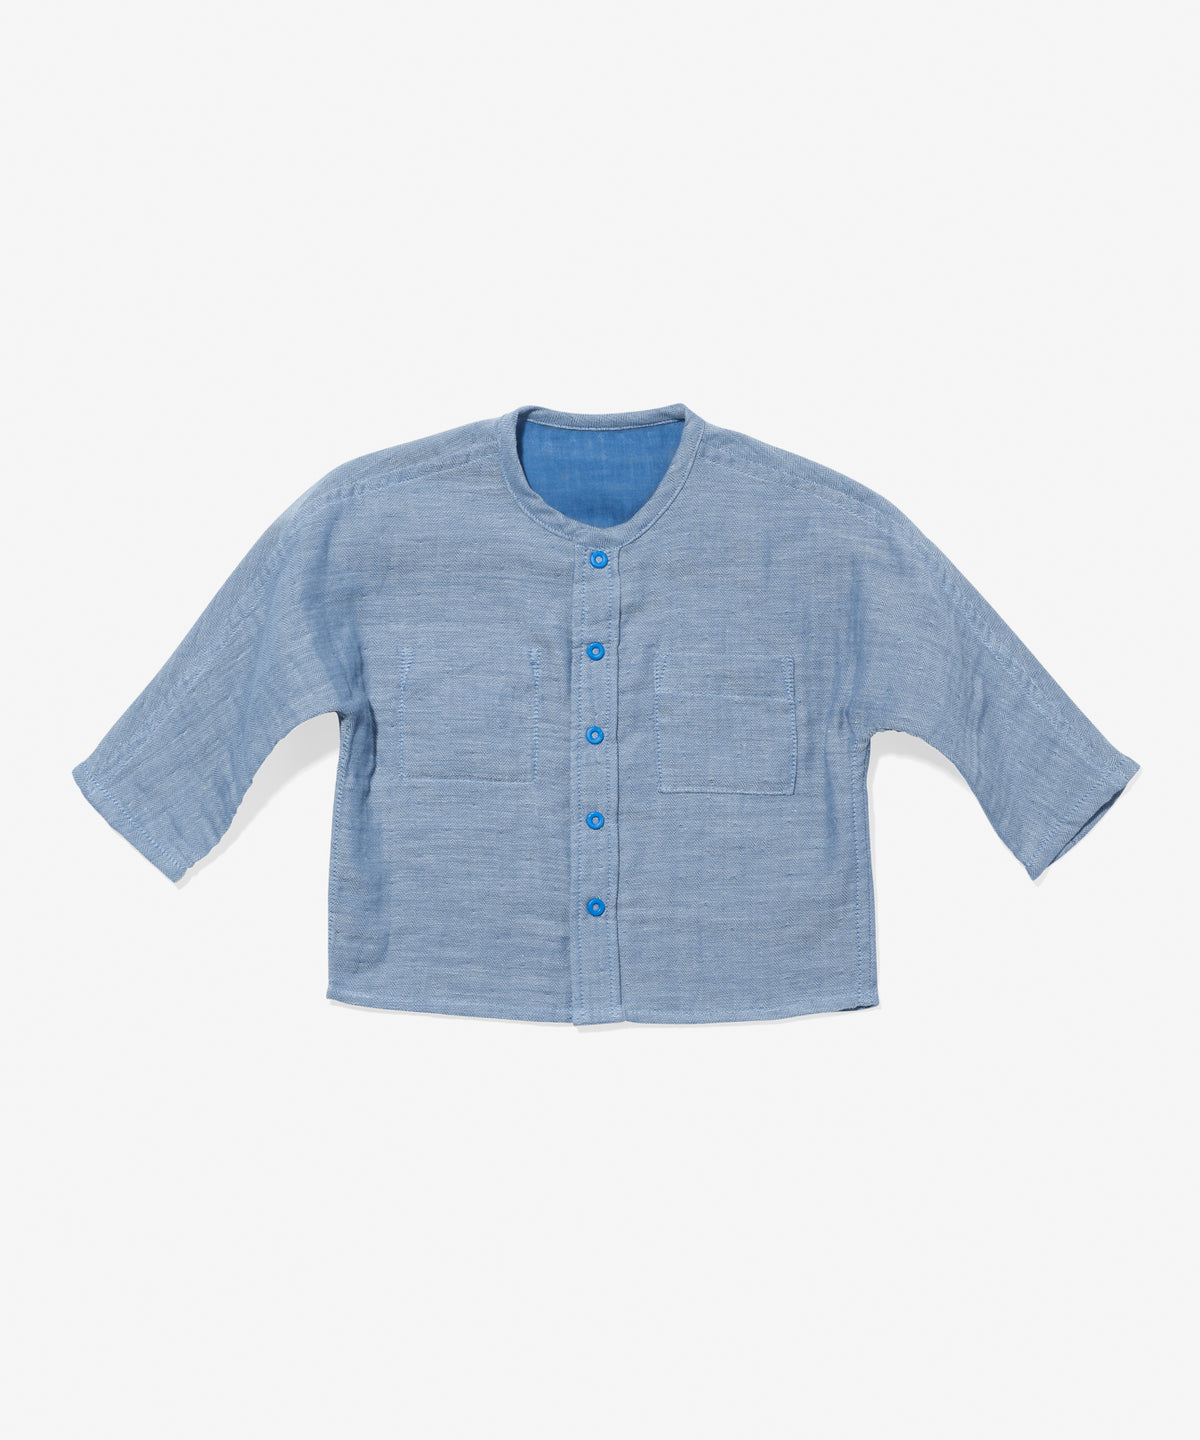 Jack Lee Baby Shirt, Blue Herringbone